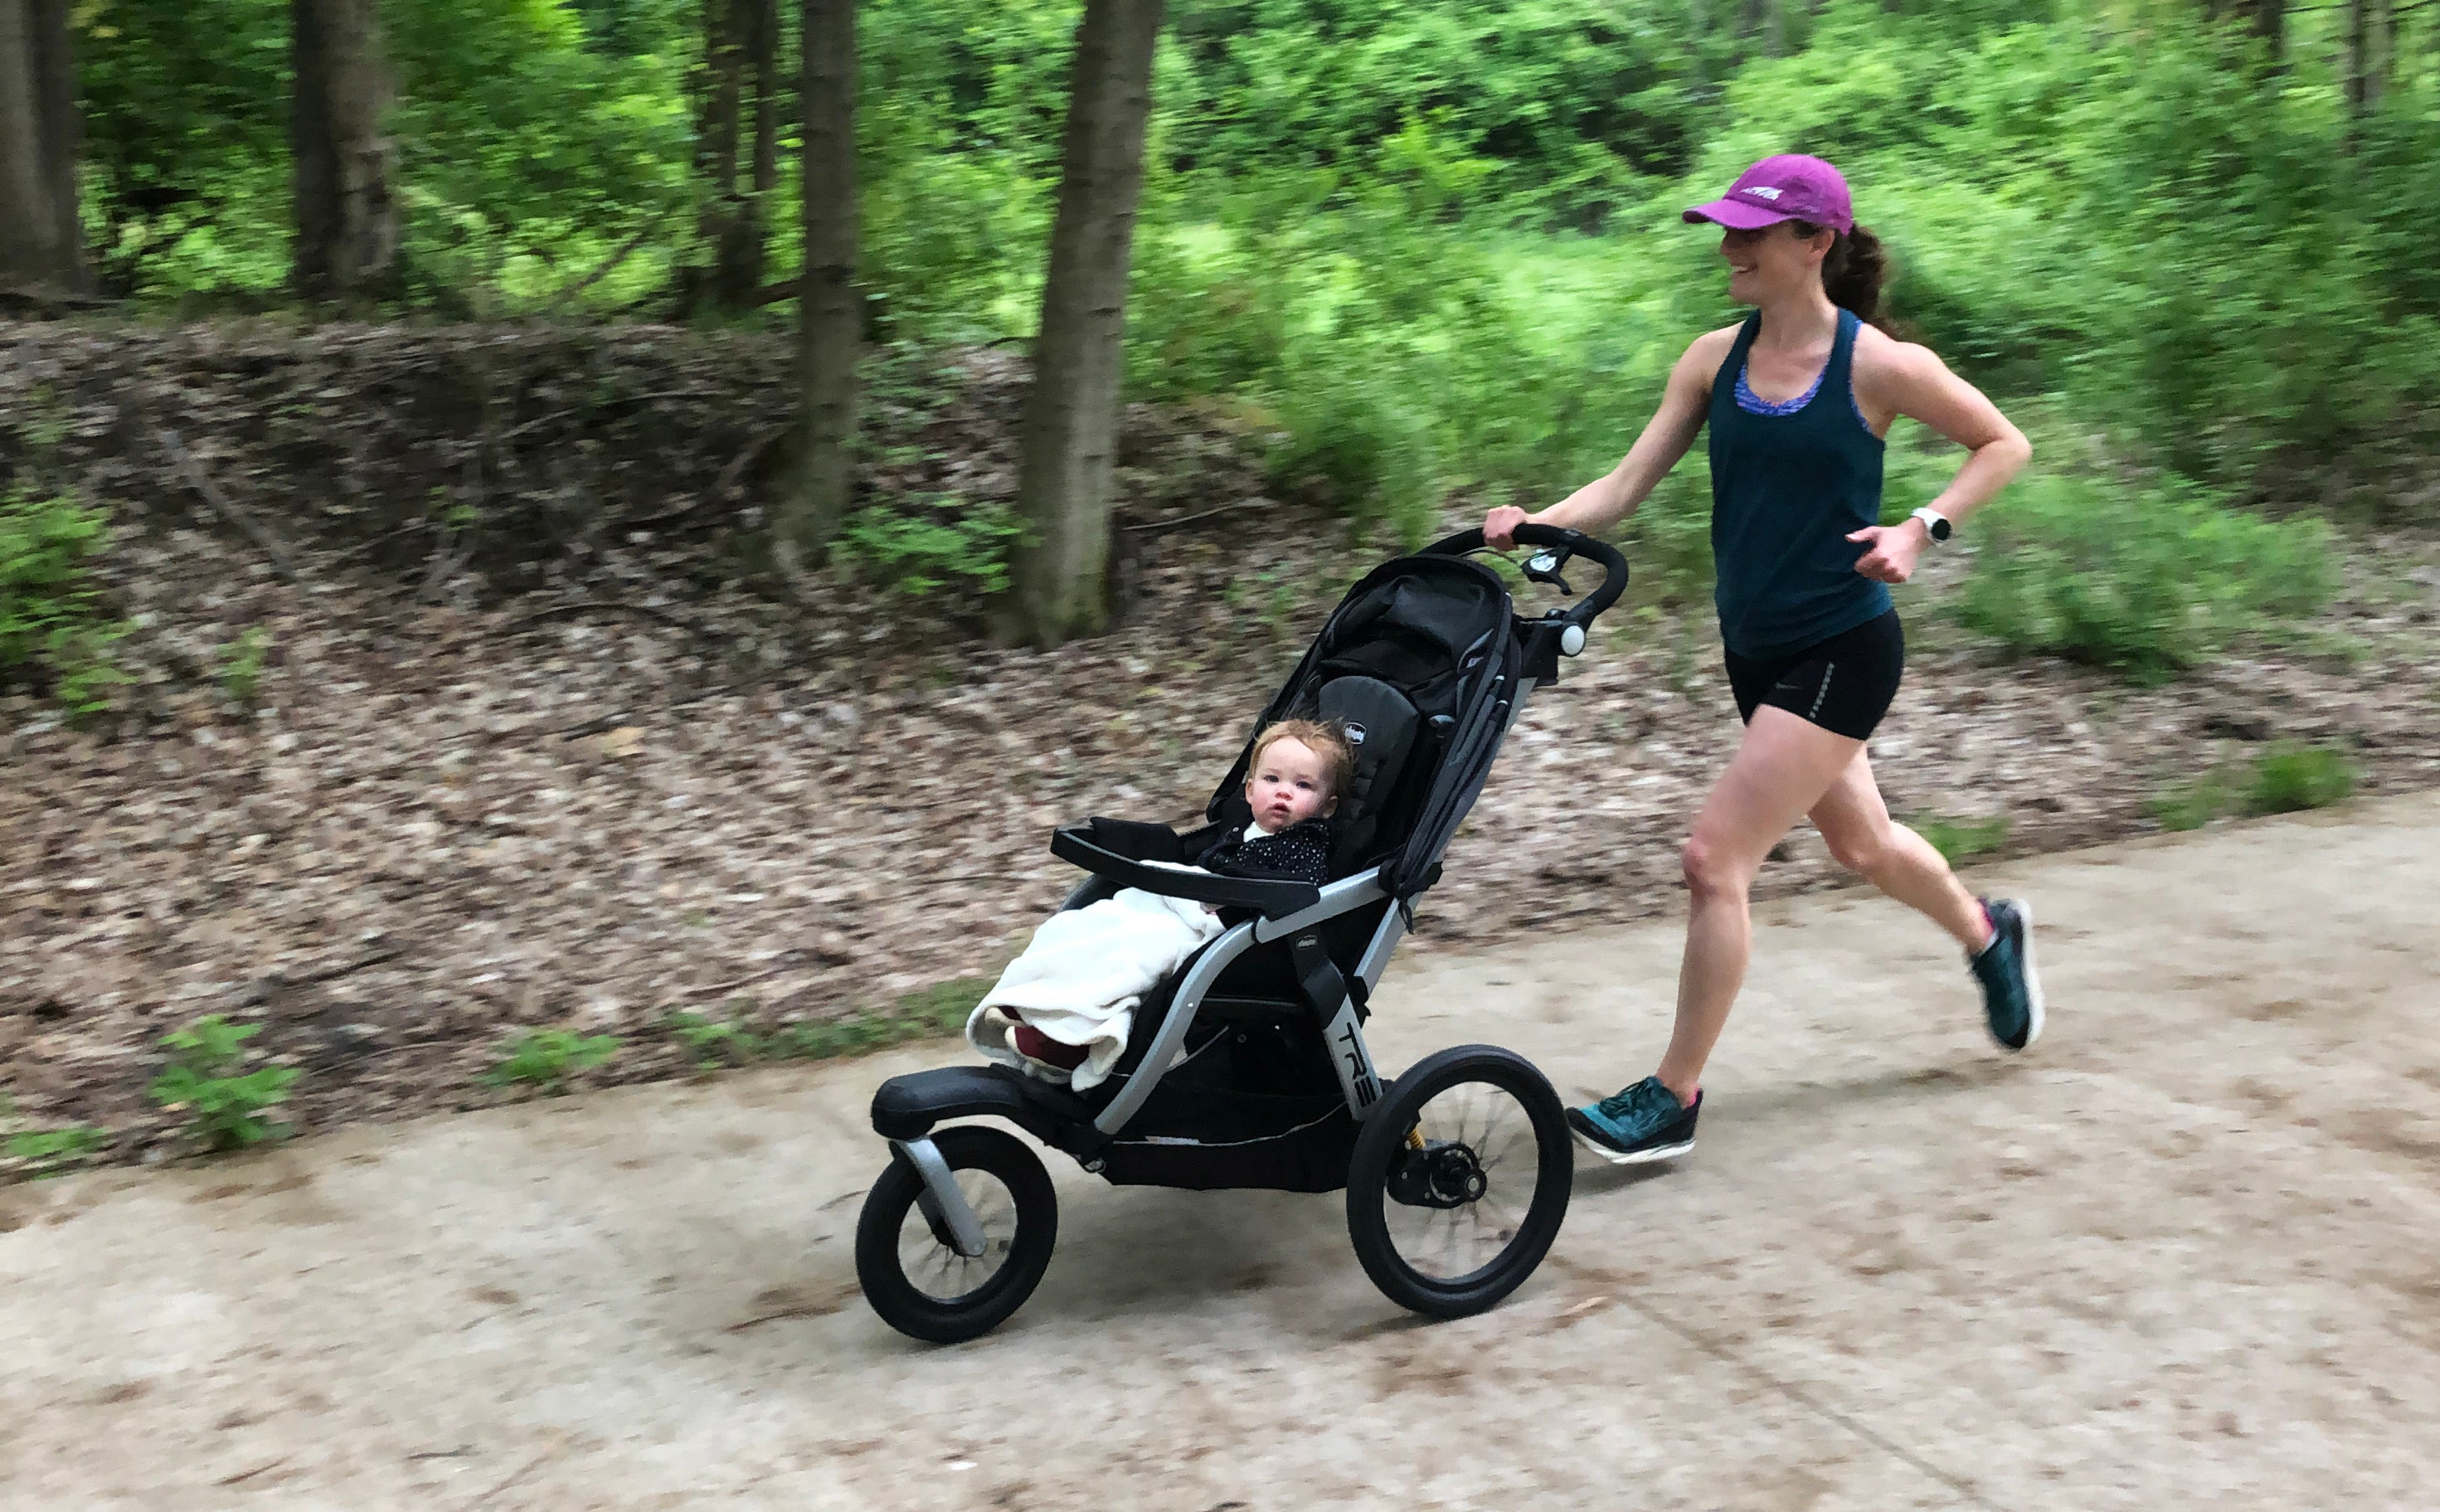 Tina Muir pushing daughter in running stroller